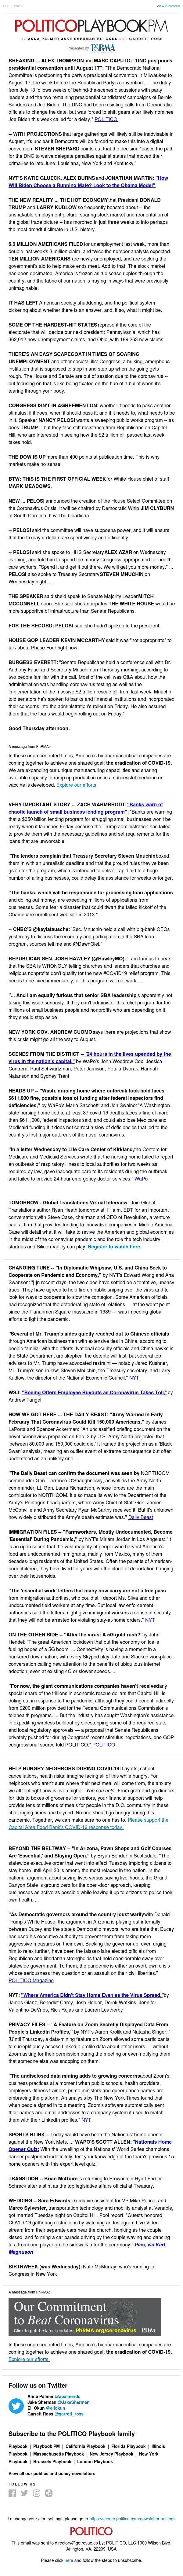 Playbook PM: The new economic reality